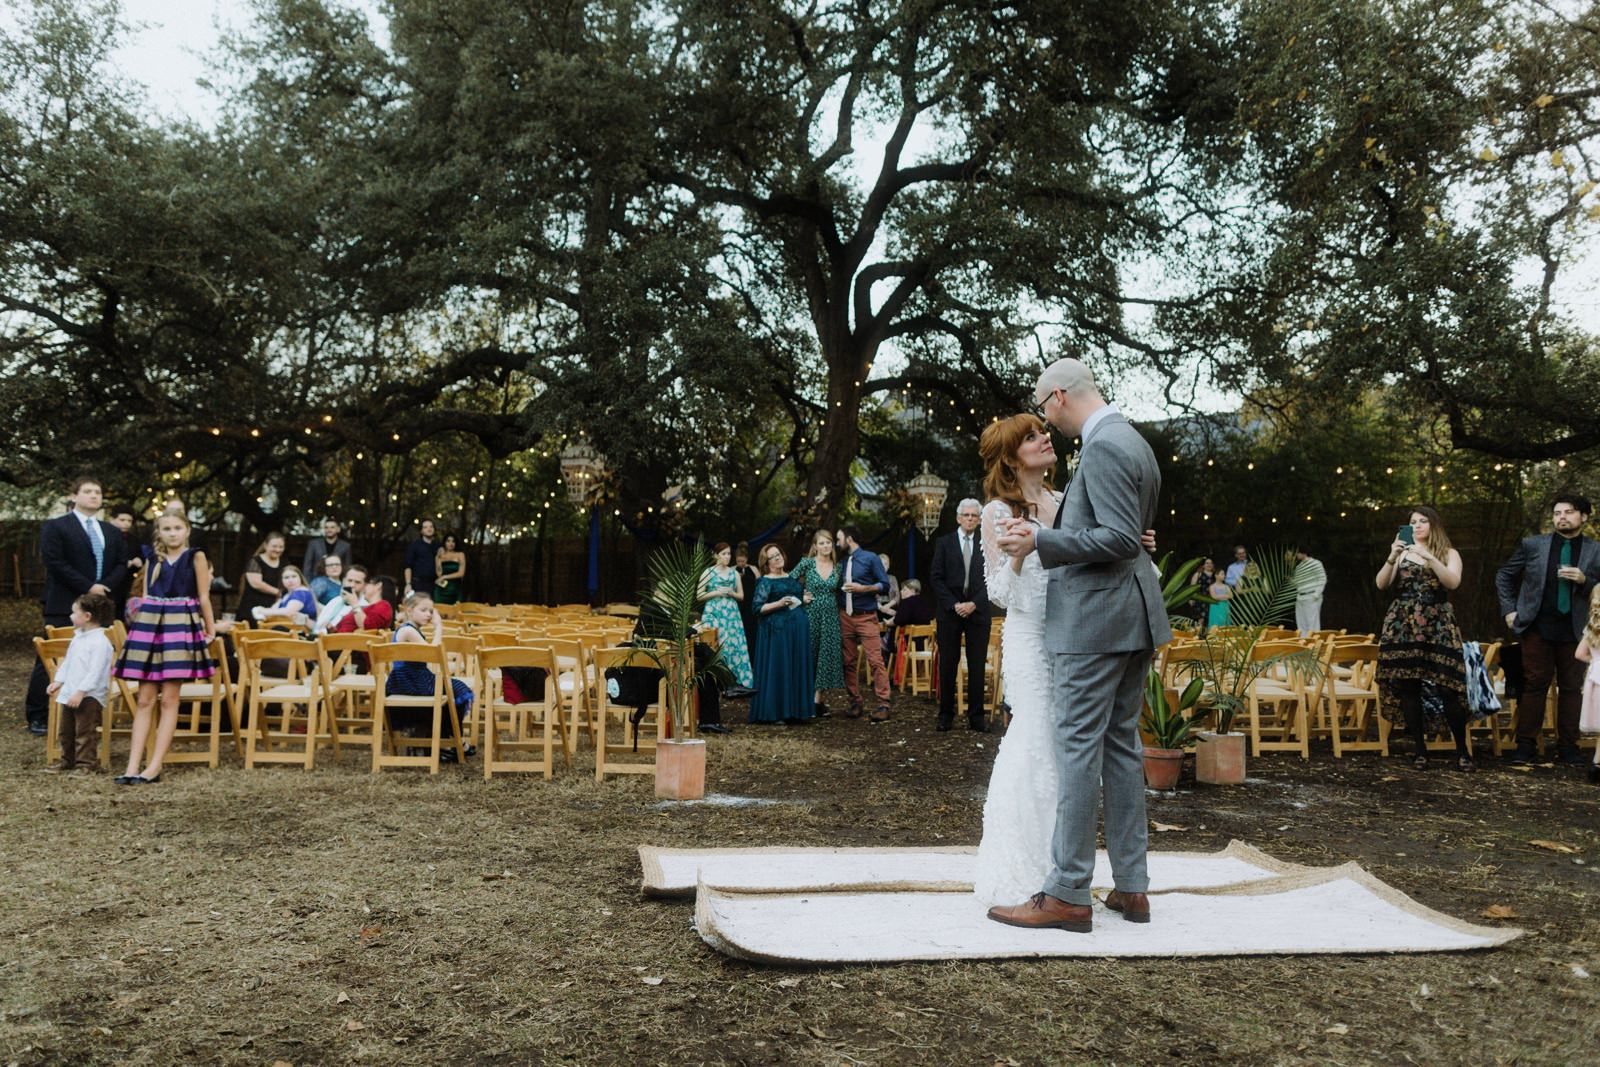 Outdoor first wedding dance at Vuka at Bouldin creek with couple holding hands dancing on a rug